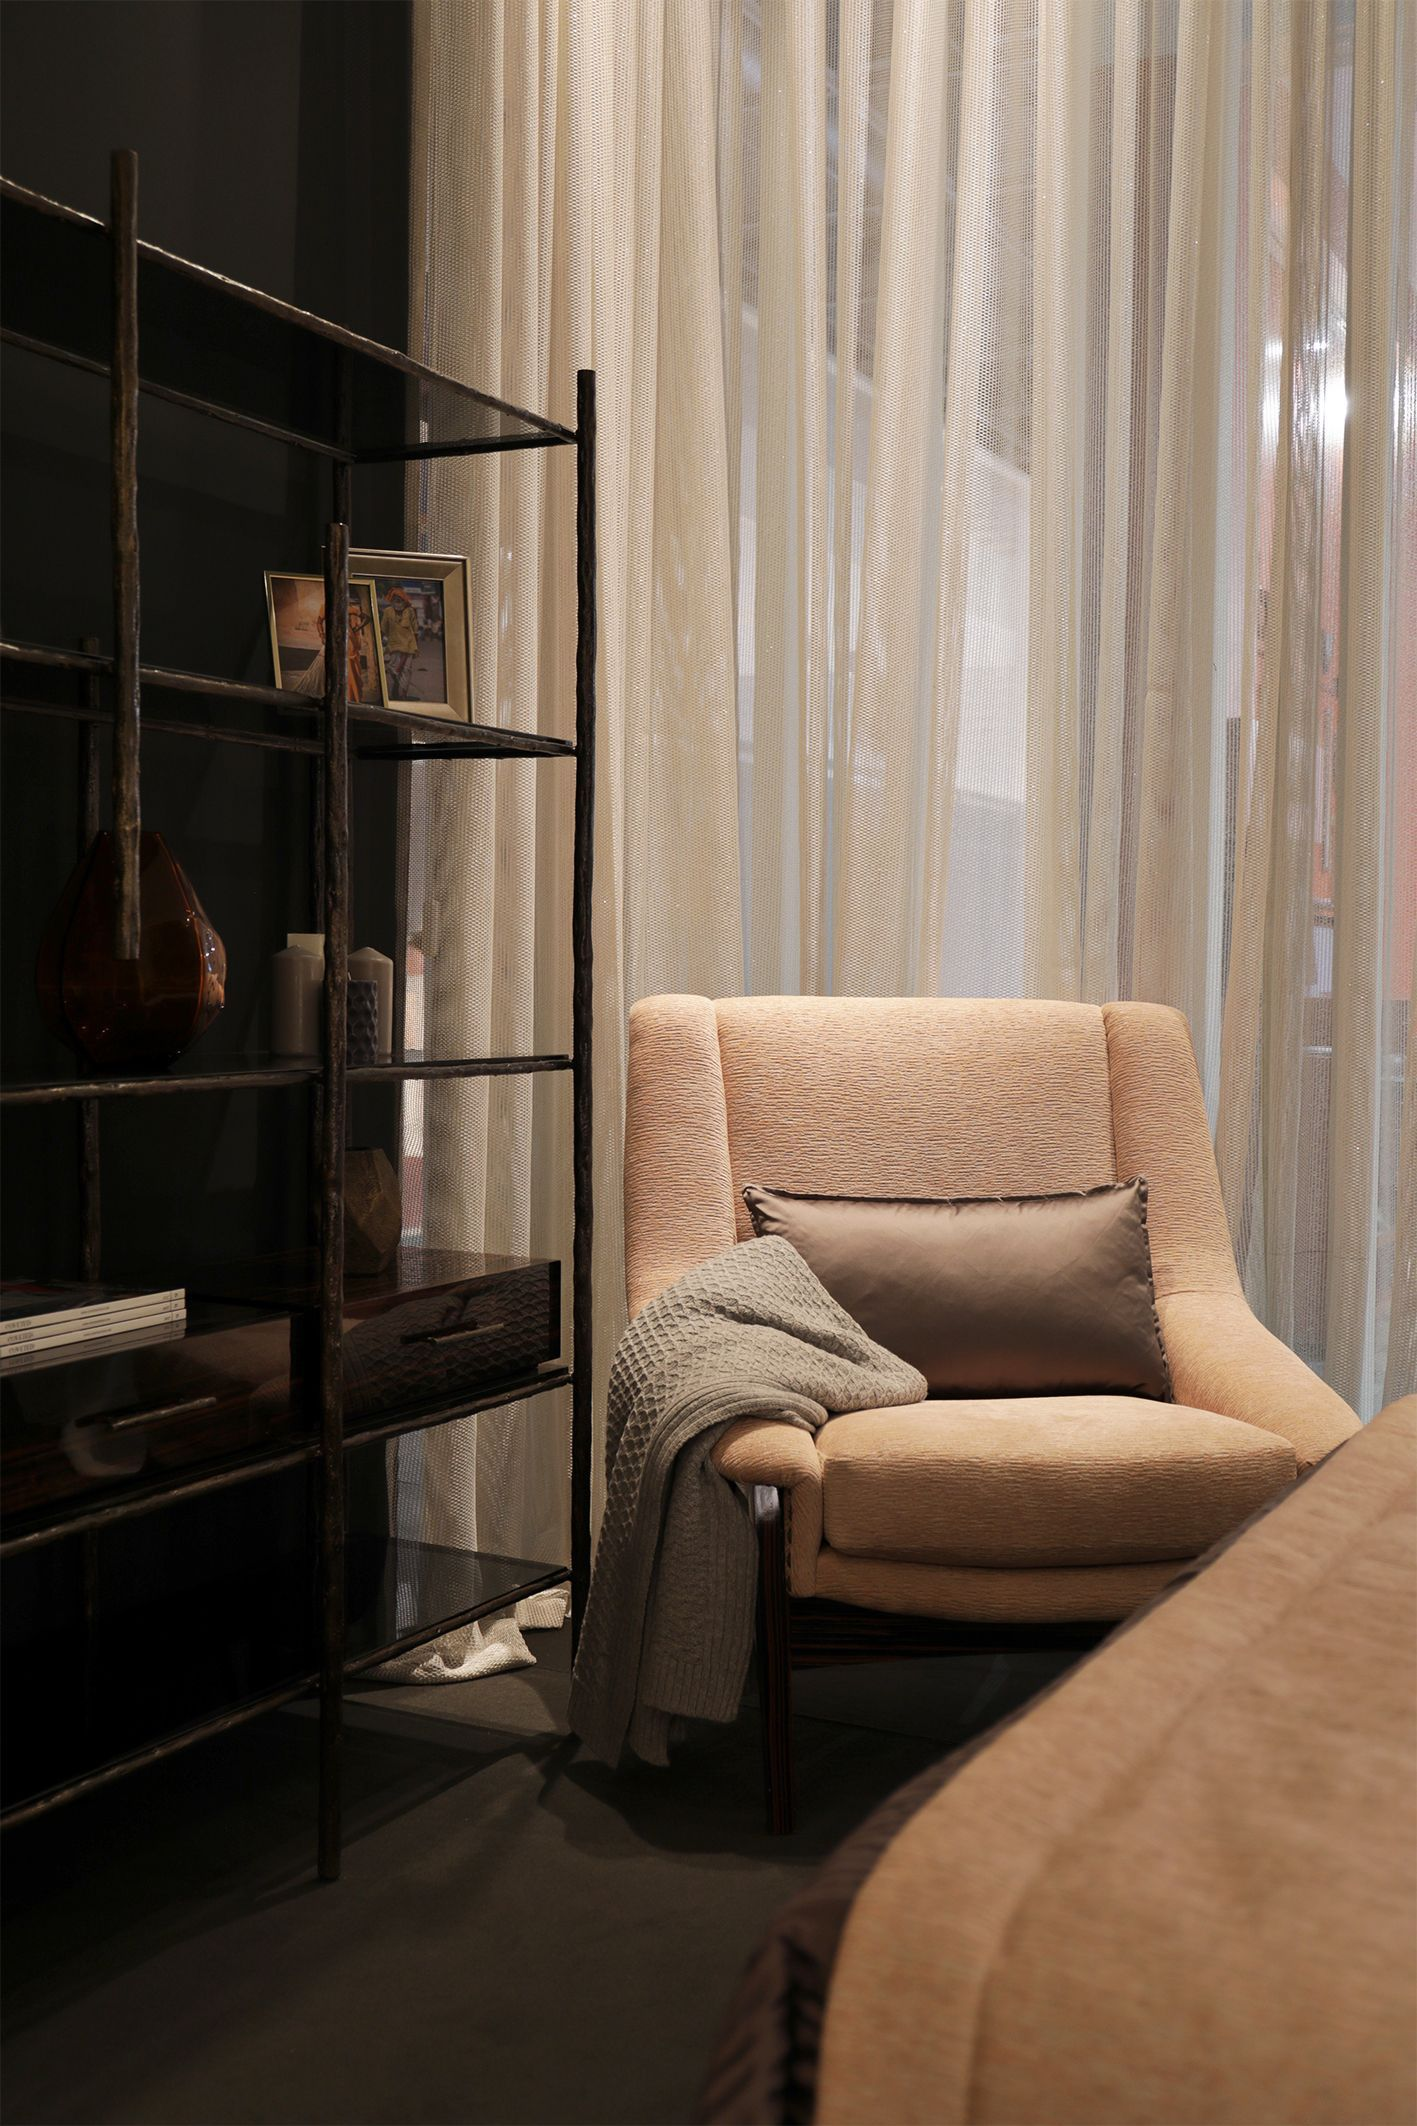 The Most Luxury And Selected Pieces Are Going To Be Present On Maison Et Objet With Images Contemporary Home Furniture Living Room Sets Furniture Hospital Interior Design